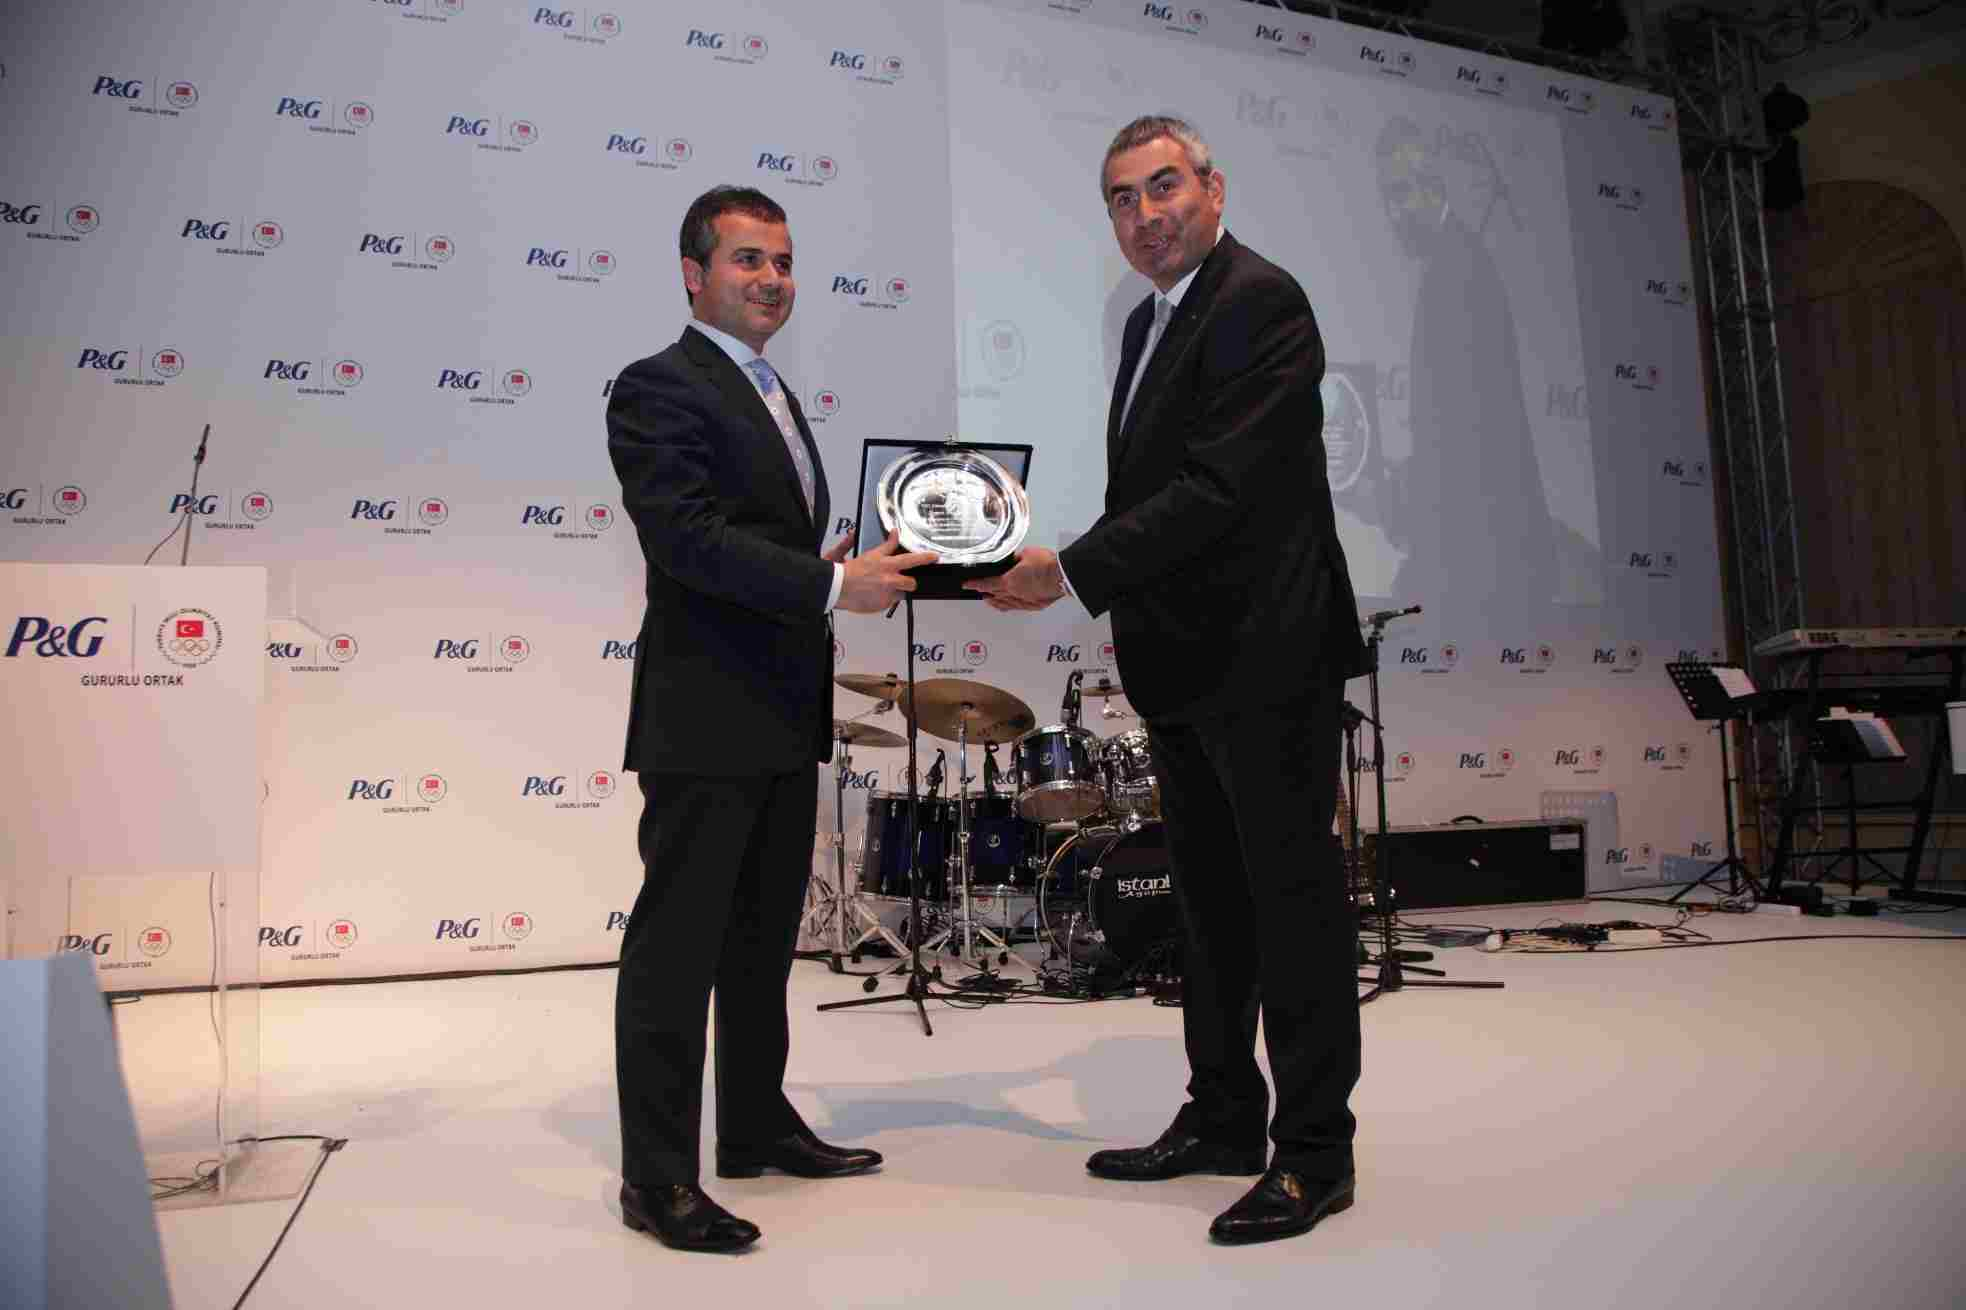 Ugur Erdener_presents_Suat_Kl_with_a_plate_thanking_him_for_his_support_of_the_NOC_and_the_Istanbul_2020_bid_May_9_2012